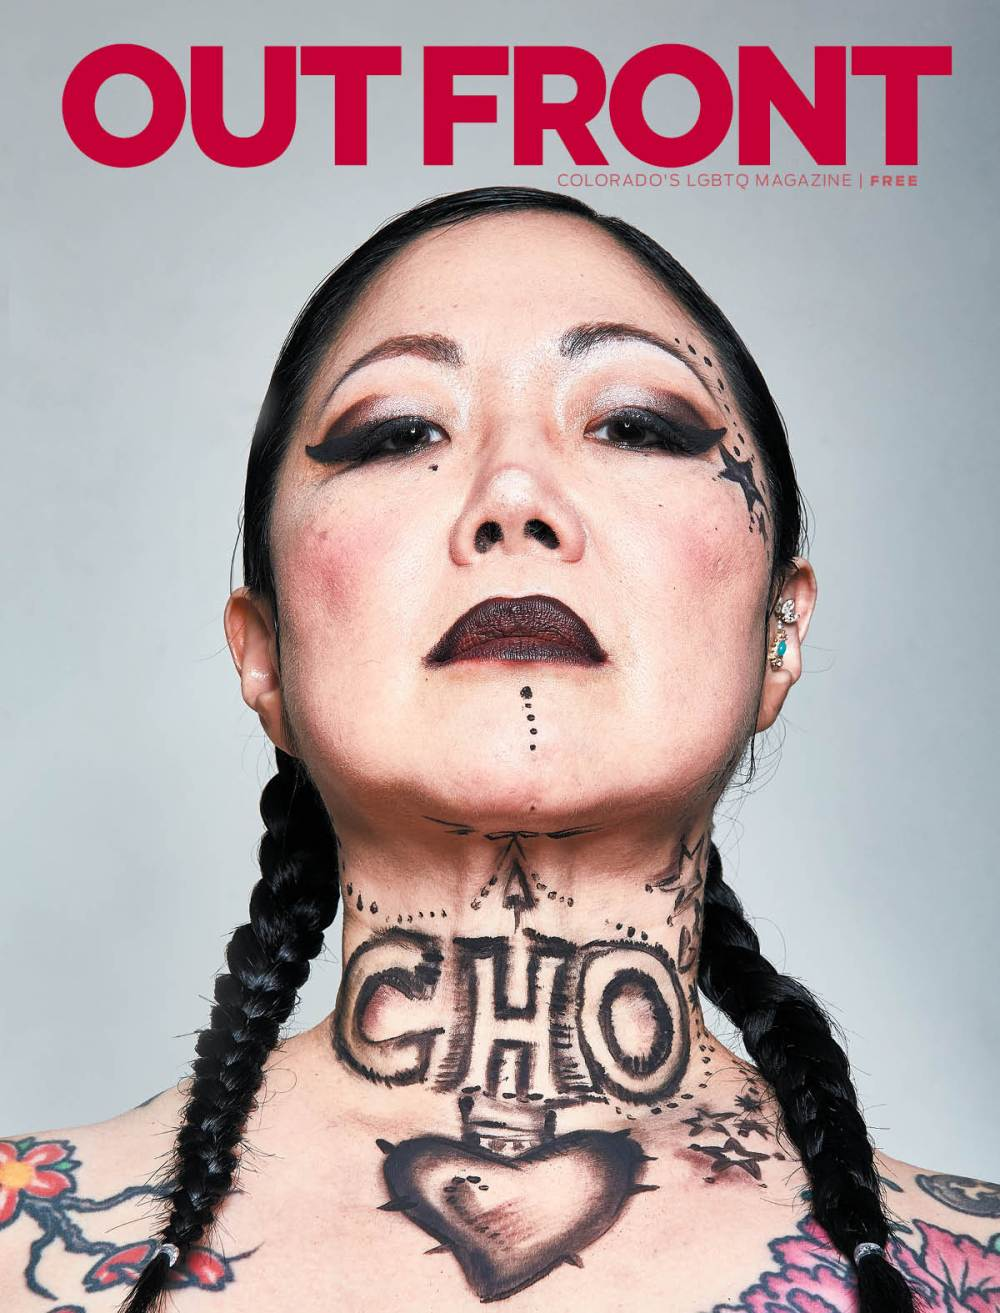 Margaret-Cho-Digital-Print-Edition